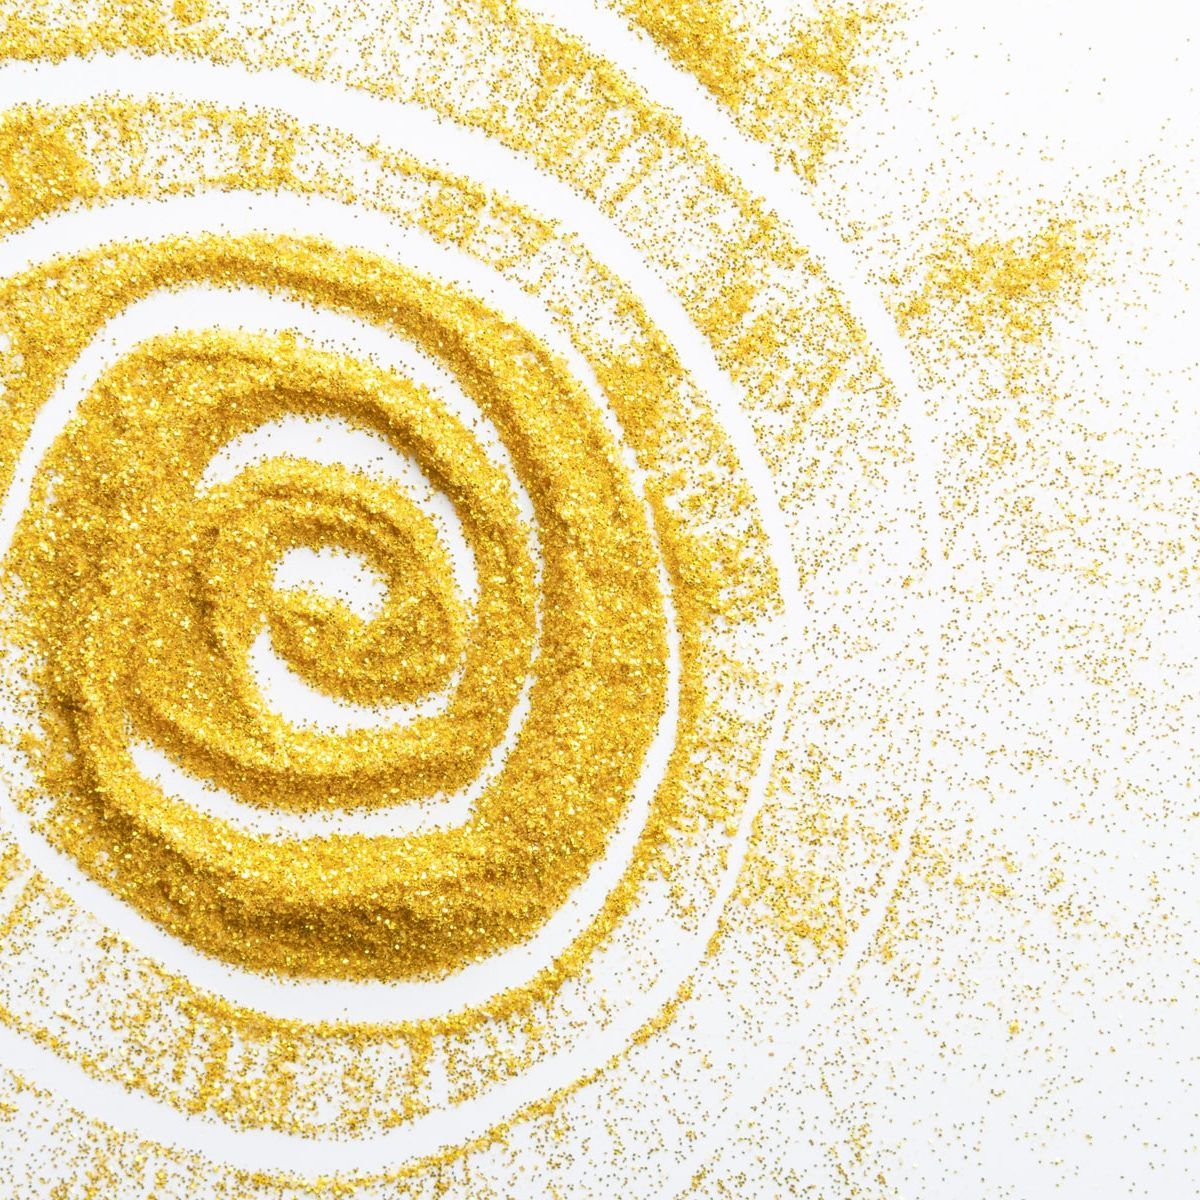 Sand painting concept. Golden glitter sand texture spread over white surface with sun shape, abstract background, top view. Yellow dusty shimmer decoration, shiny and sparkling.